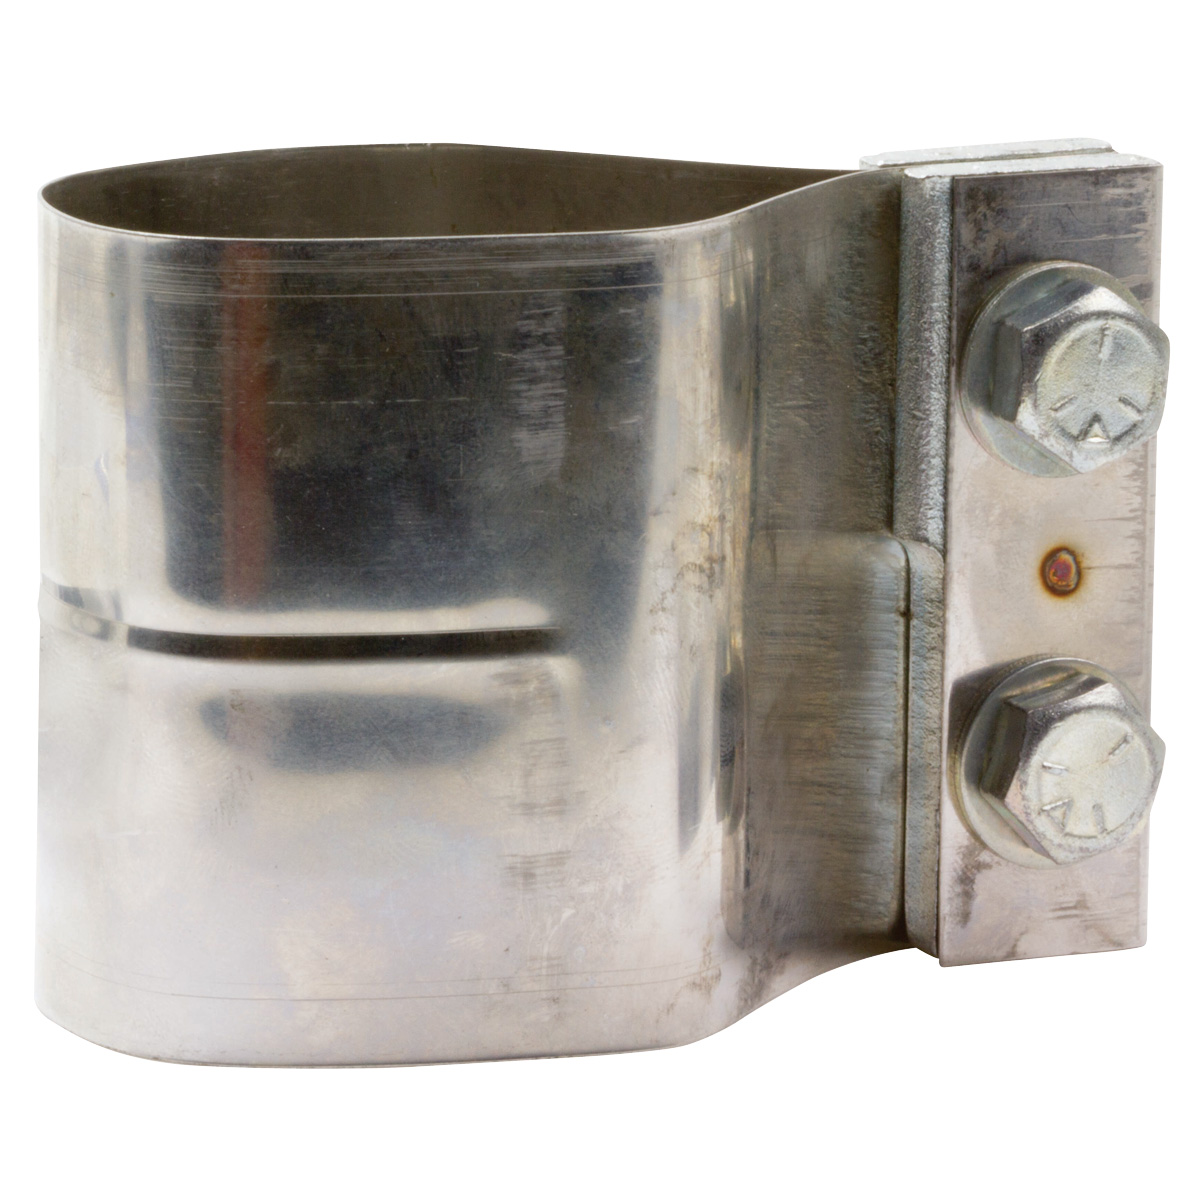 Positive Seal Exhaust Clamp - Kimball Midwest